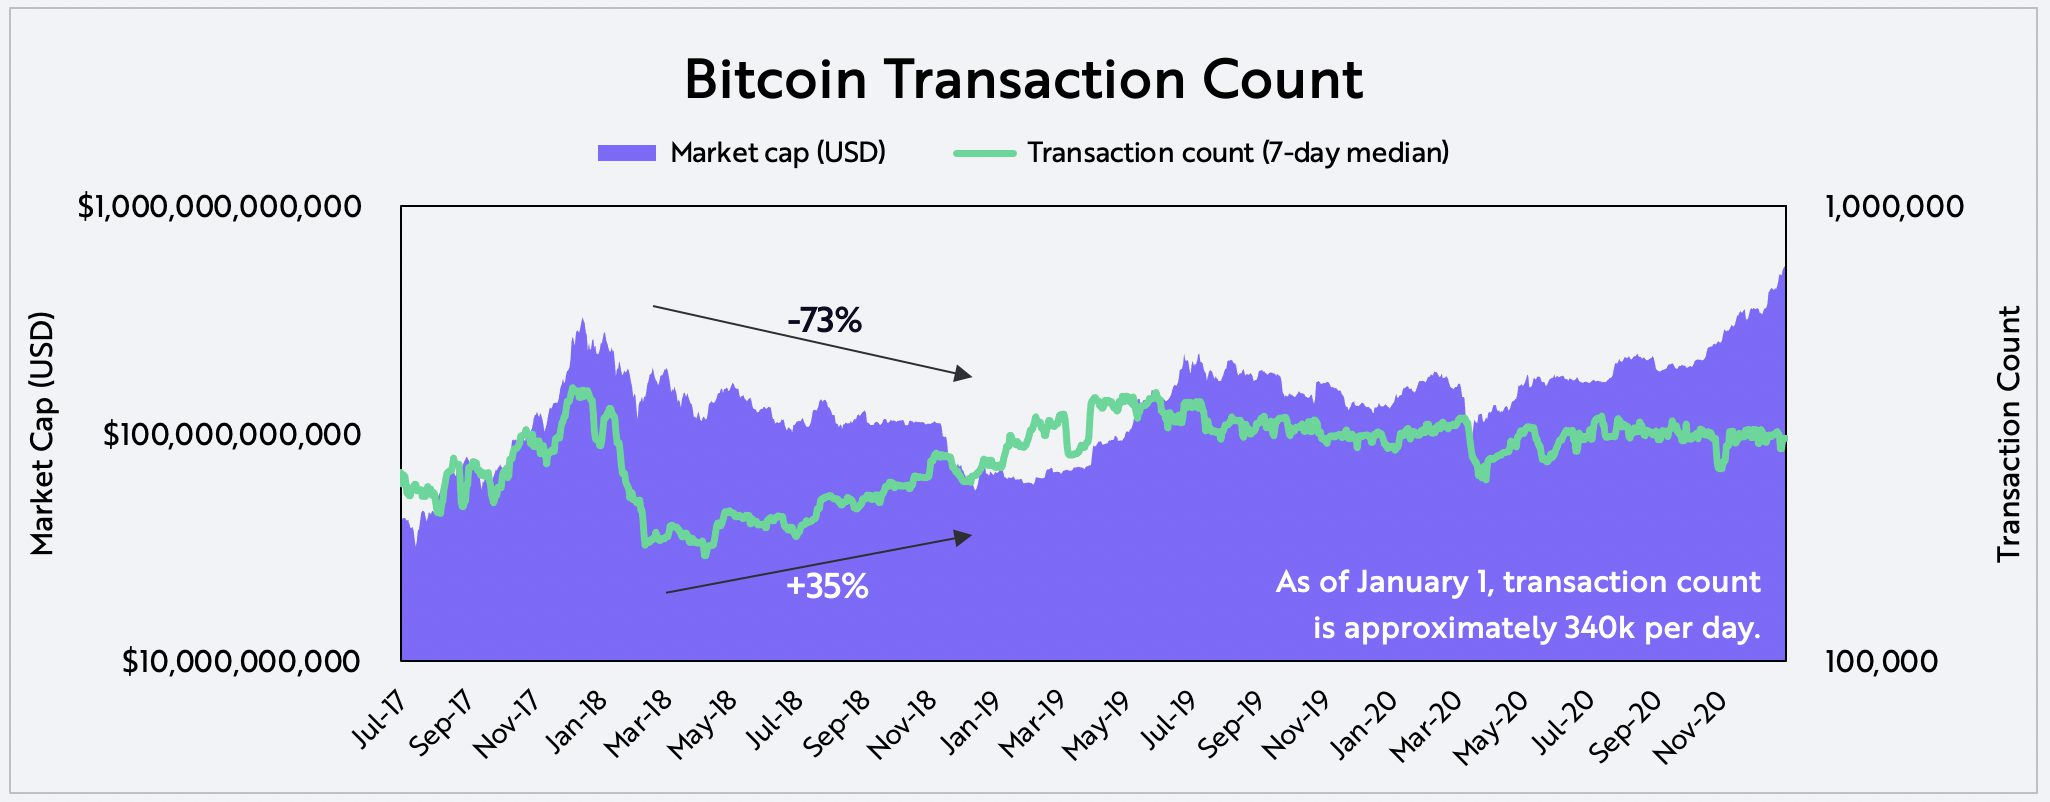 Evaluating Bitcoin Transaction Count on-chain data